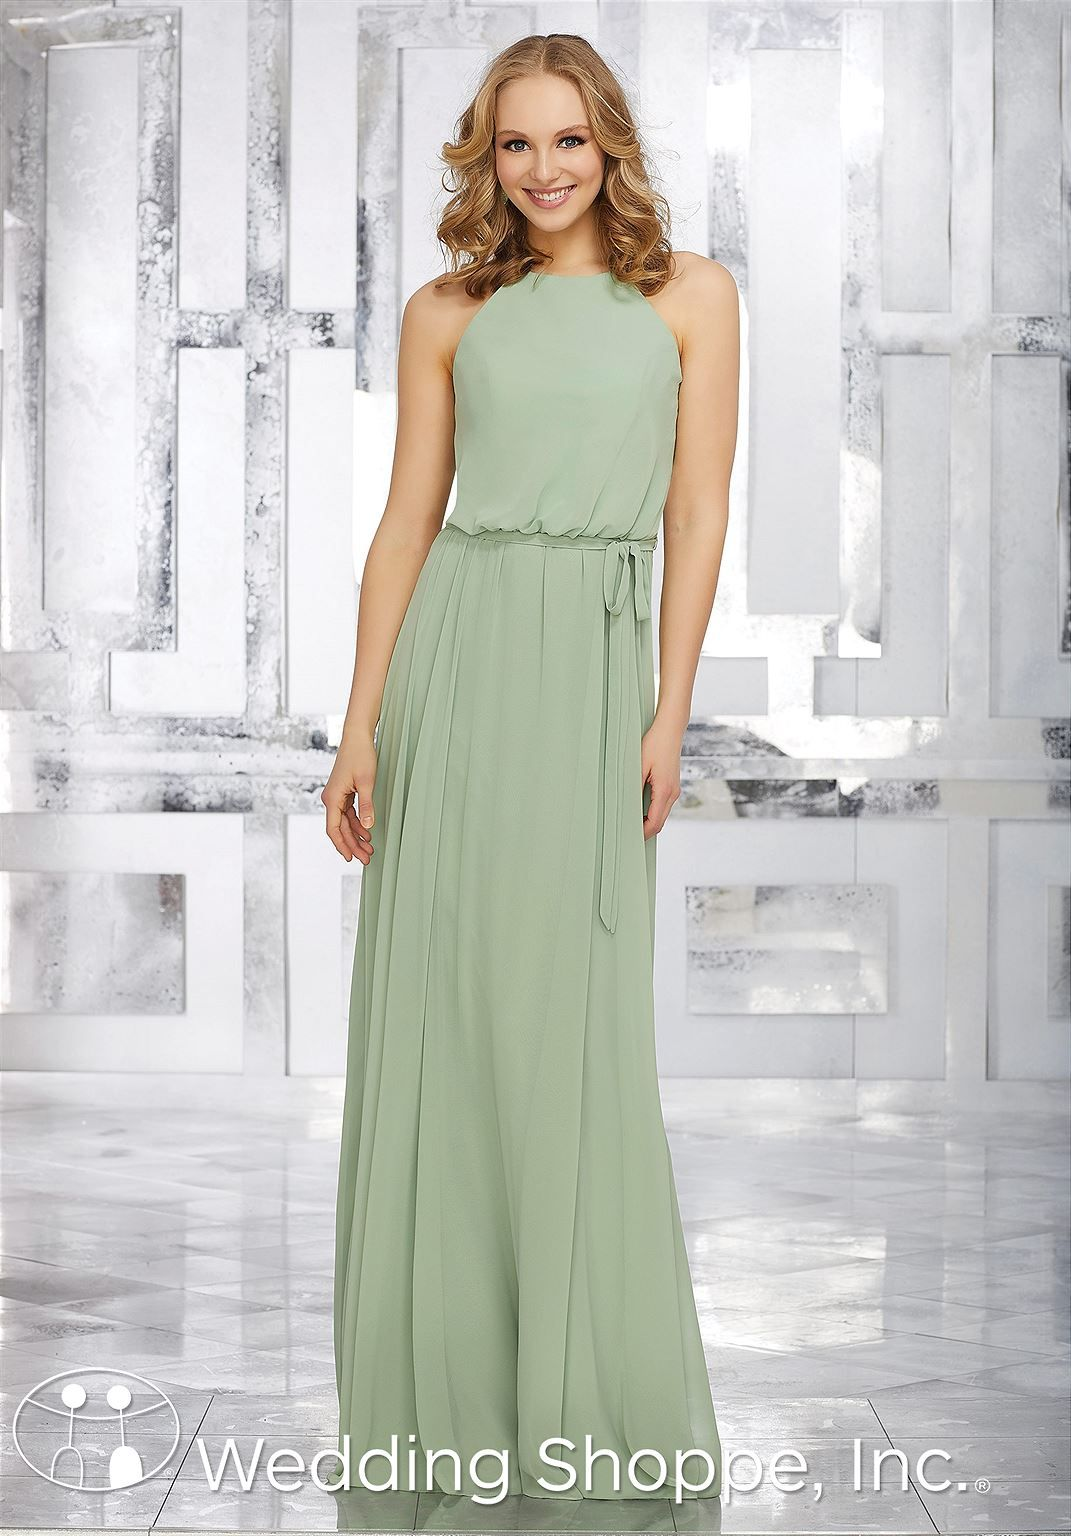 Mori lee madeline gardner wedding dress  Mori Lee Blouson Chiffon  Bridesmaid Dress  Bridesmaids